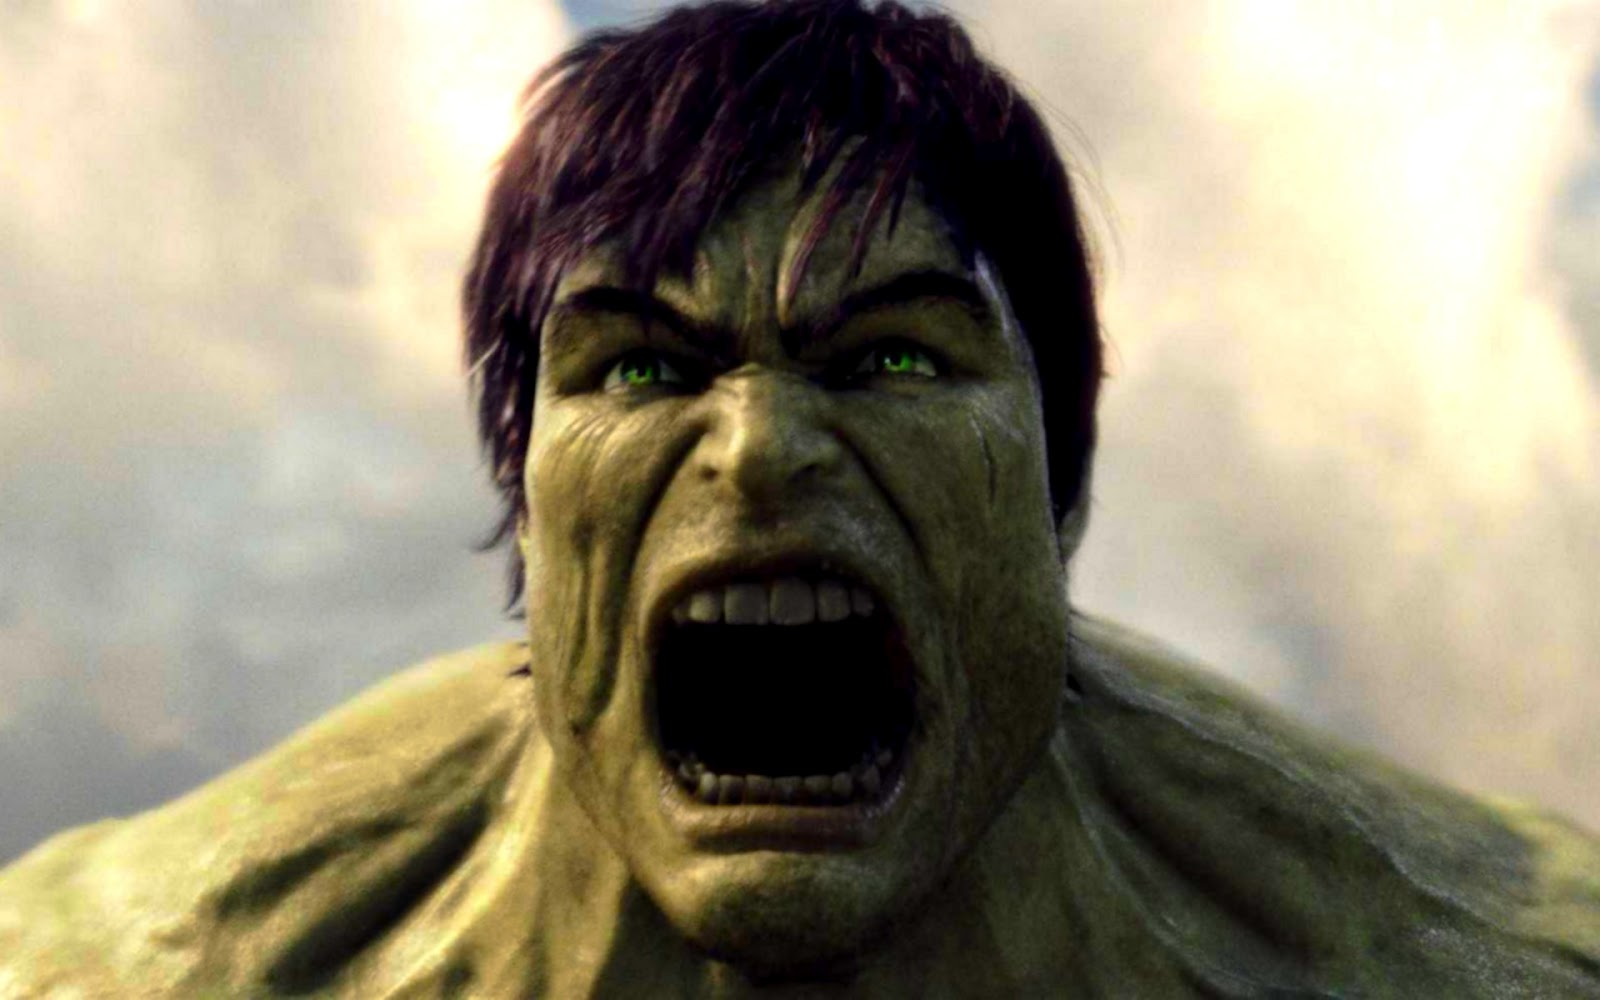 http://3.bp.blogspot.com/-beOIjf0jD8g/T6KseOEMeNI/AAAAAAAAGnM/Rpxg6tl3iyU/s1600/incredible-hulk-movie-edward-norton-vs-the-avengers-movie-funny-pinoy-jokes-photos-2012.jpg